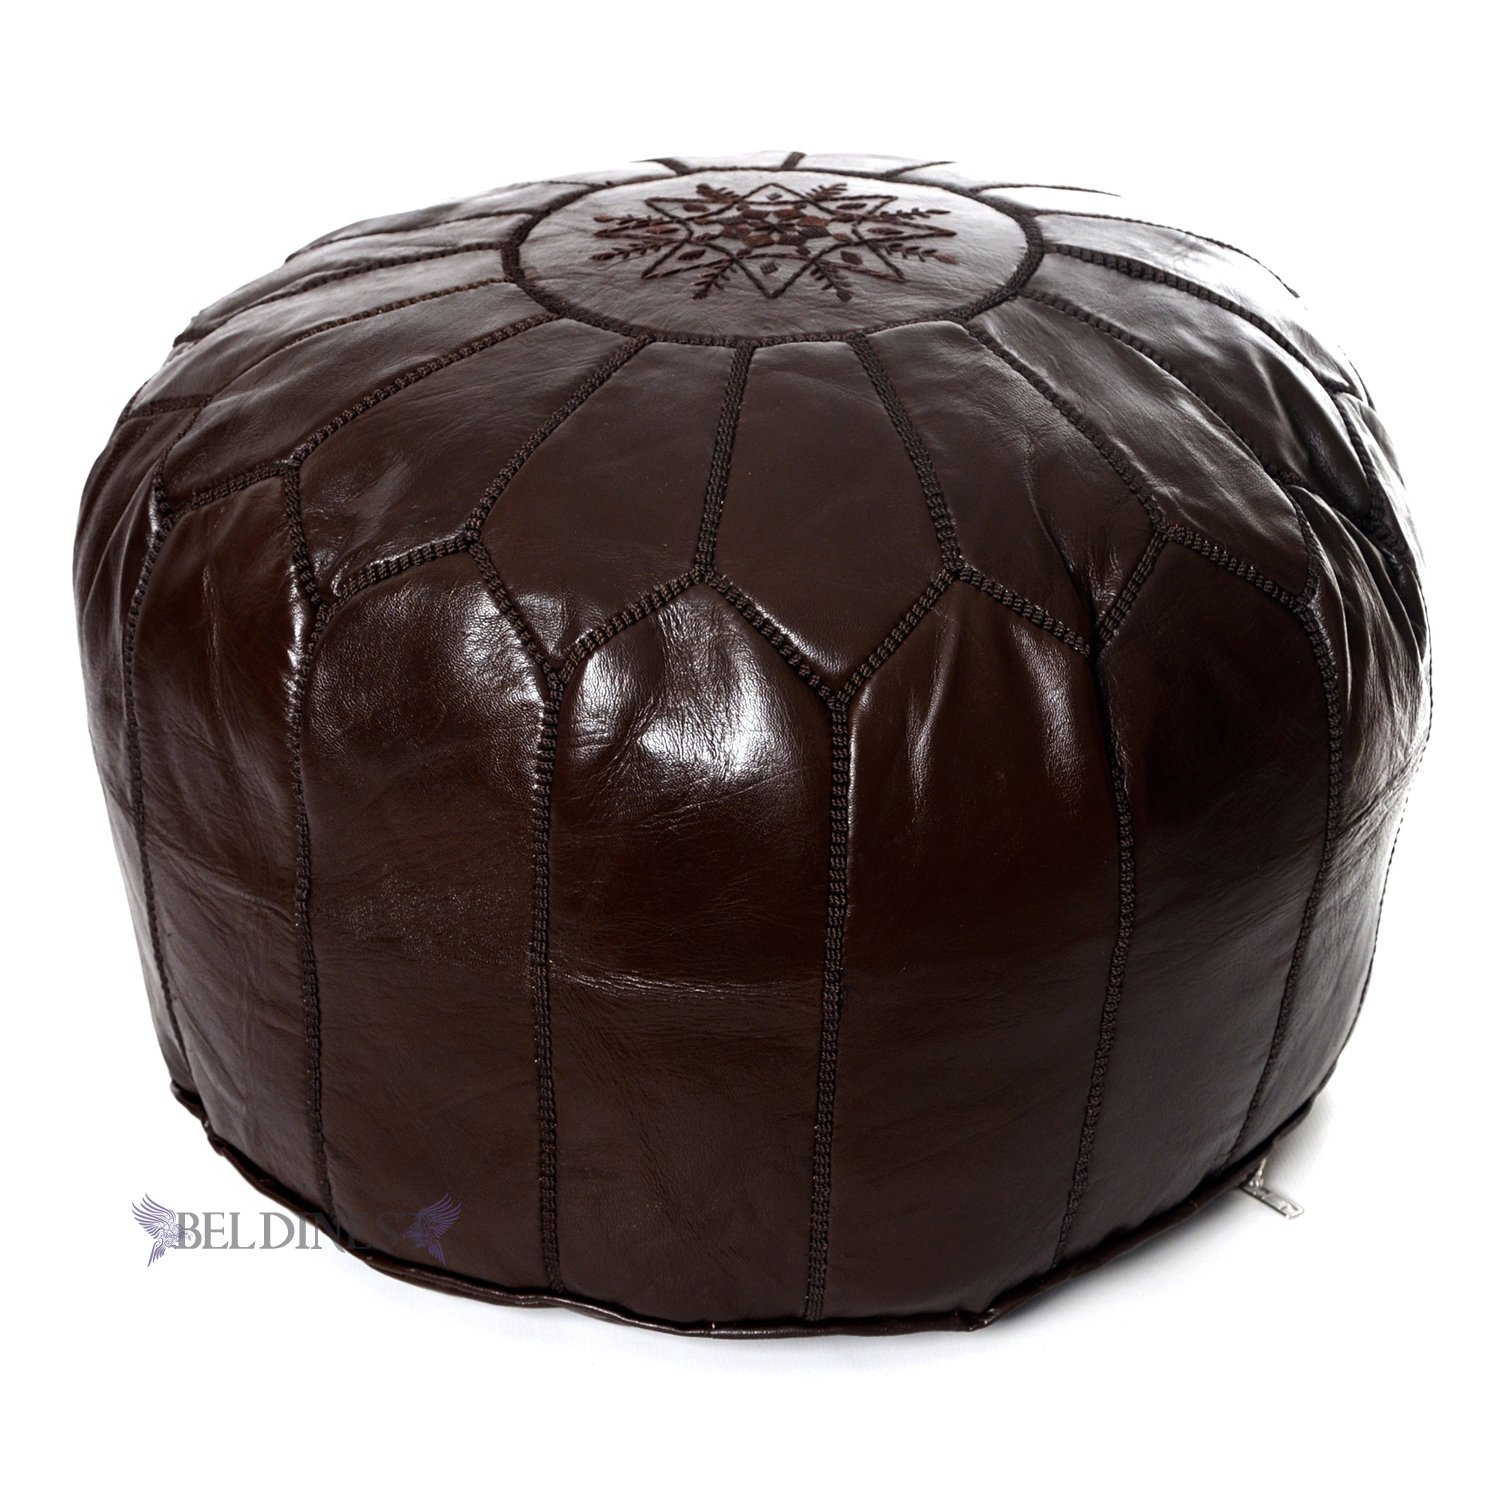 Stuffed Moroccan Chocolate Brown Leather Pouf, Handmade Ottoman, Pouffe, Hassock, Tuffet, Foot Stool, Seating Foot Rest